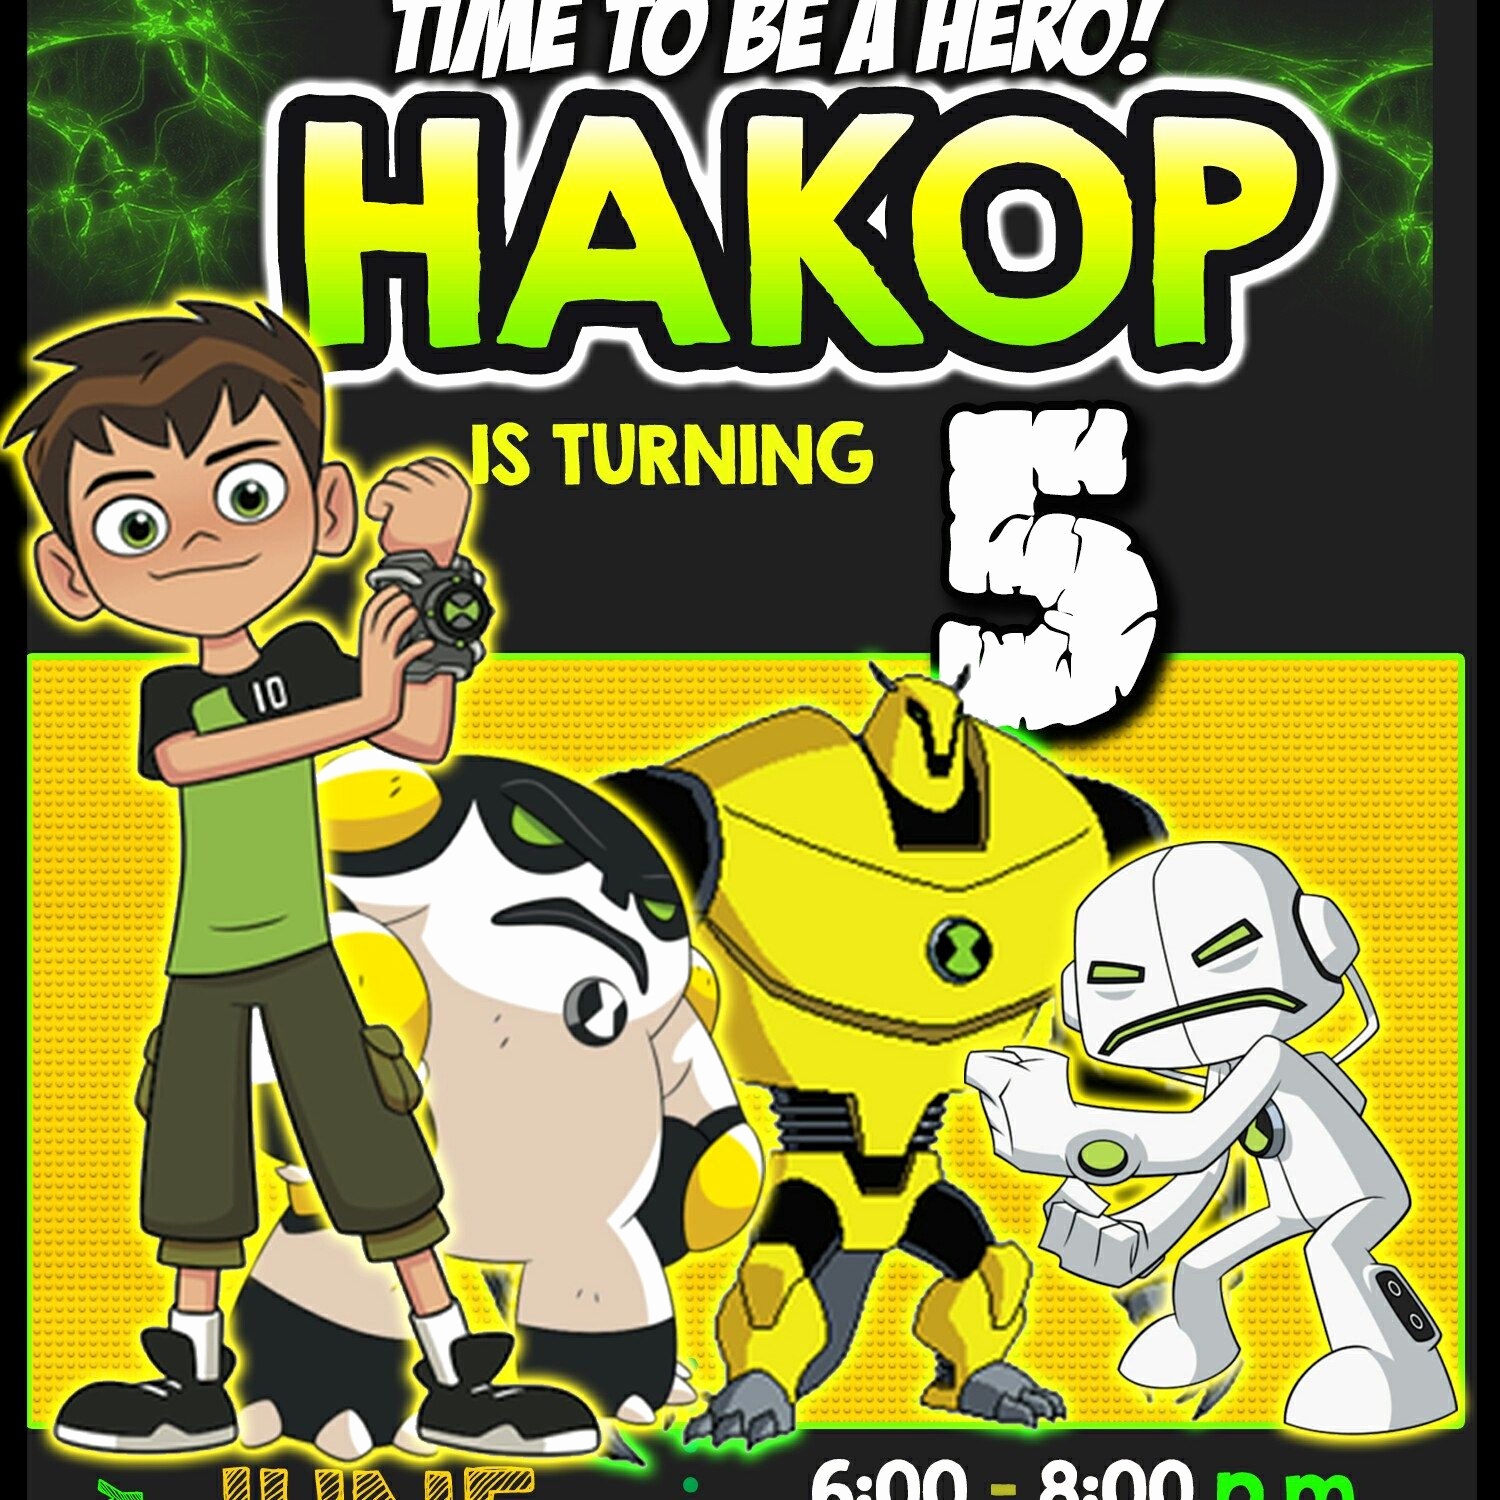 Ben 10 Birthday Invitation Awesome Working On Hakop Ben 10 Birthday Invitation